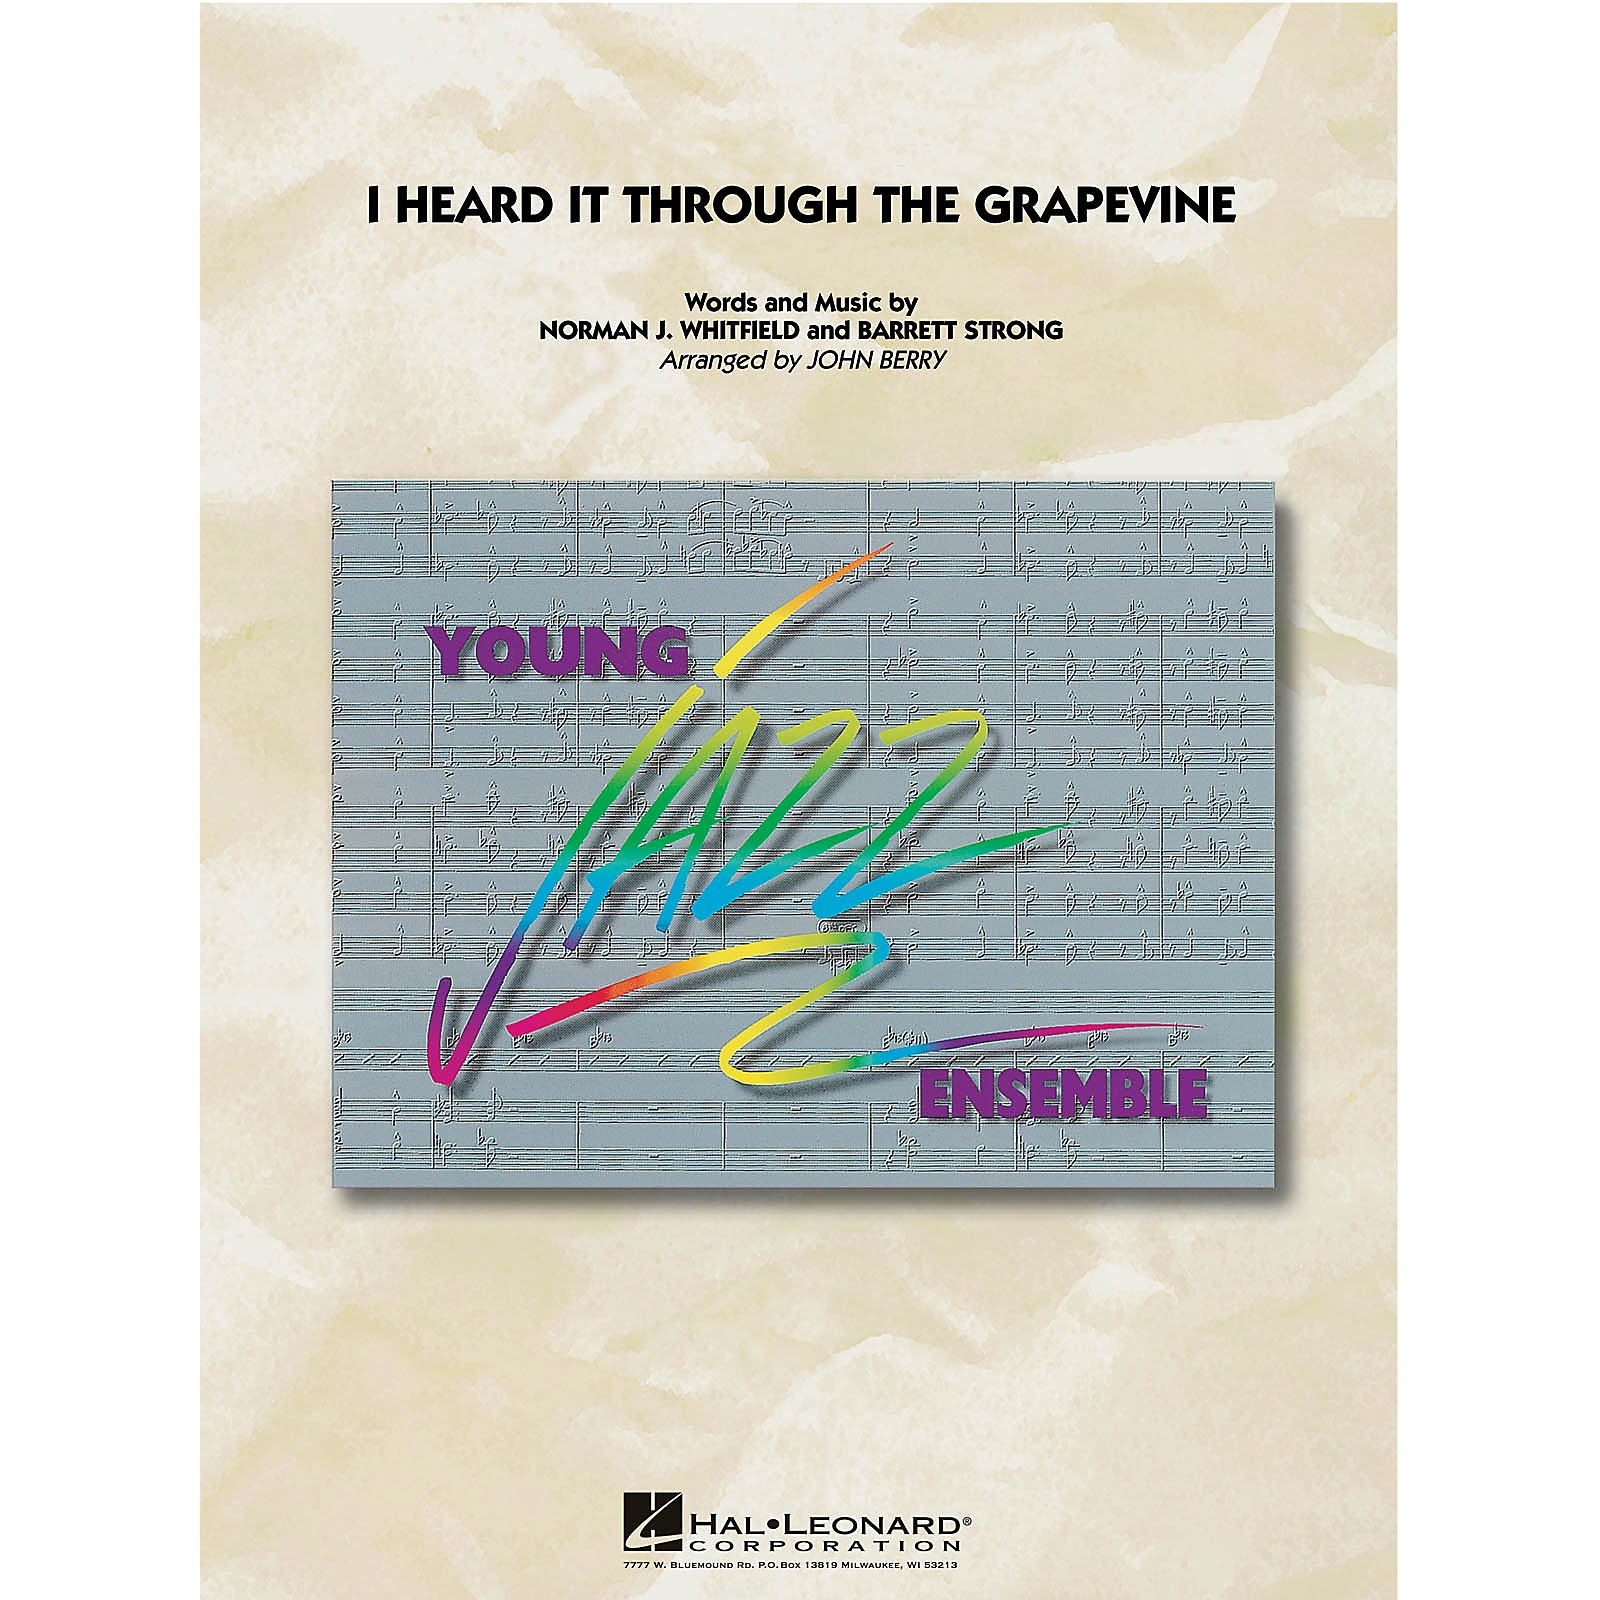 Hal Leonard I Heard It Through the Grapevine Jazz Band Level 3 by Marvin Gaye Arranged by John Berry